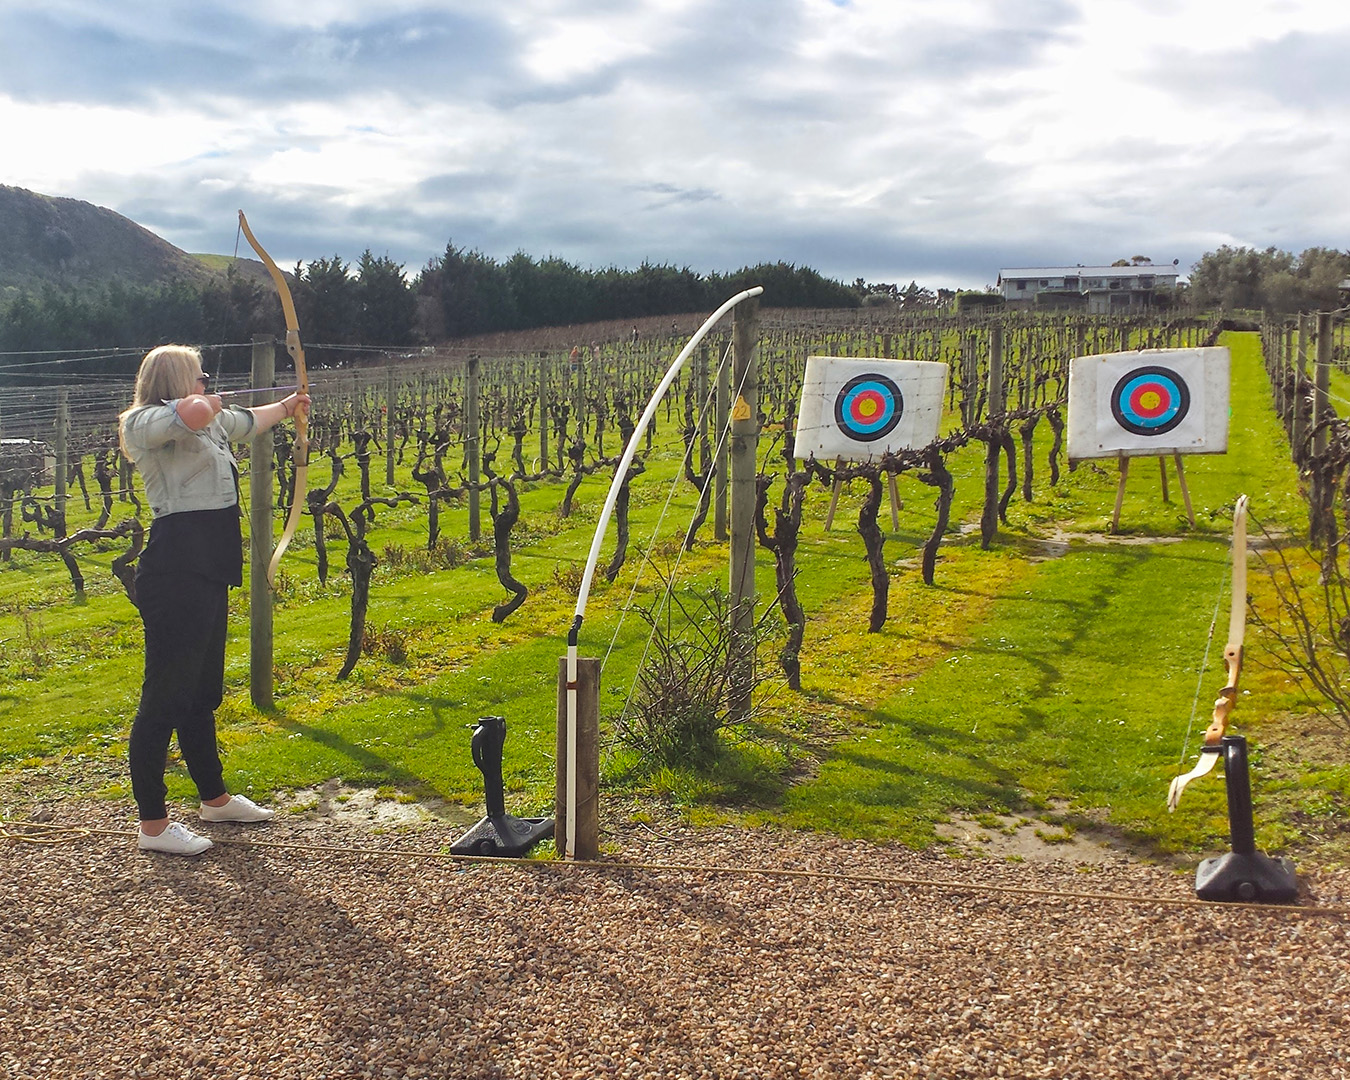 A girl takes aim with a bow and arrow at archery amongst the vines.